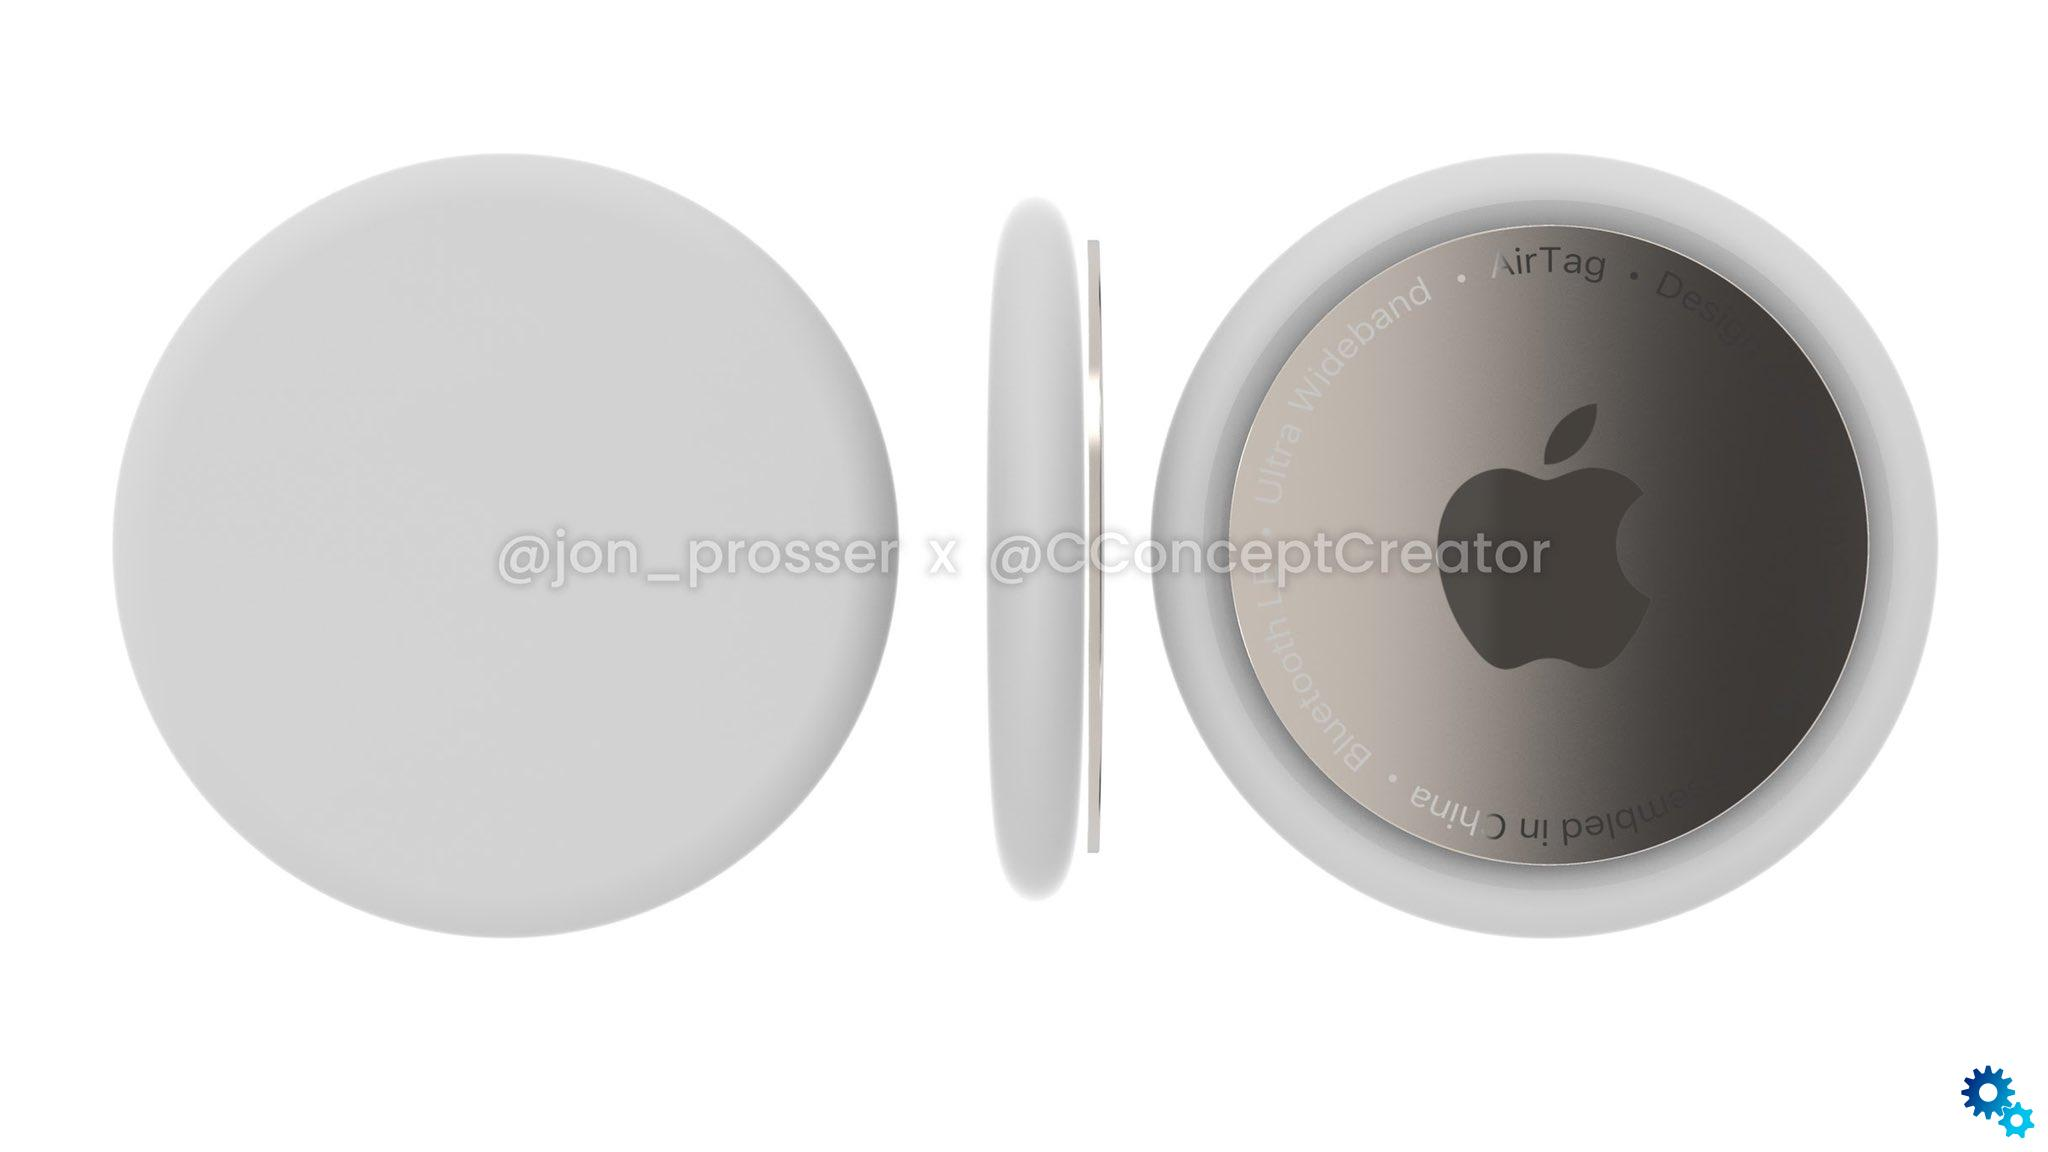 AirTags locators are available in two sizes